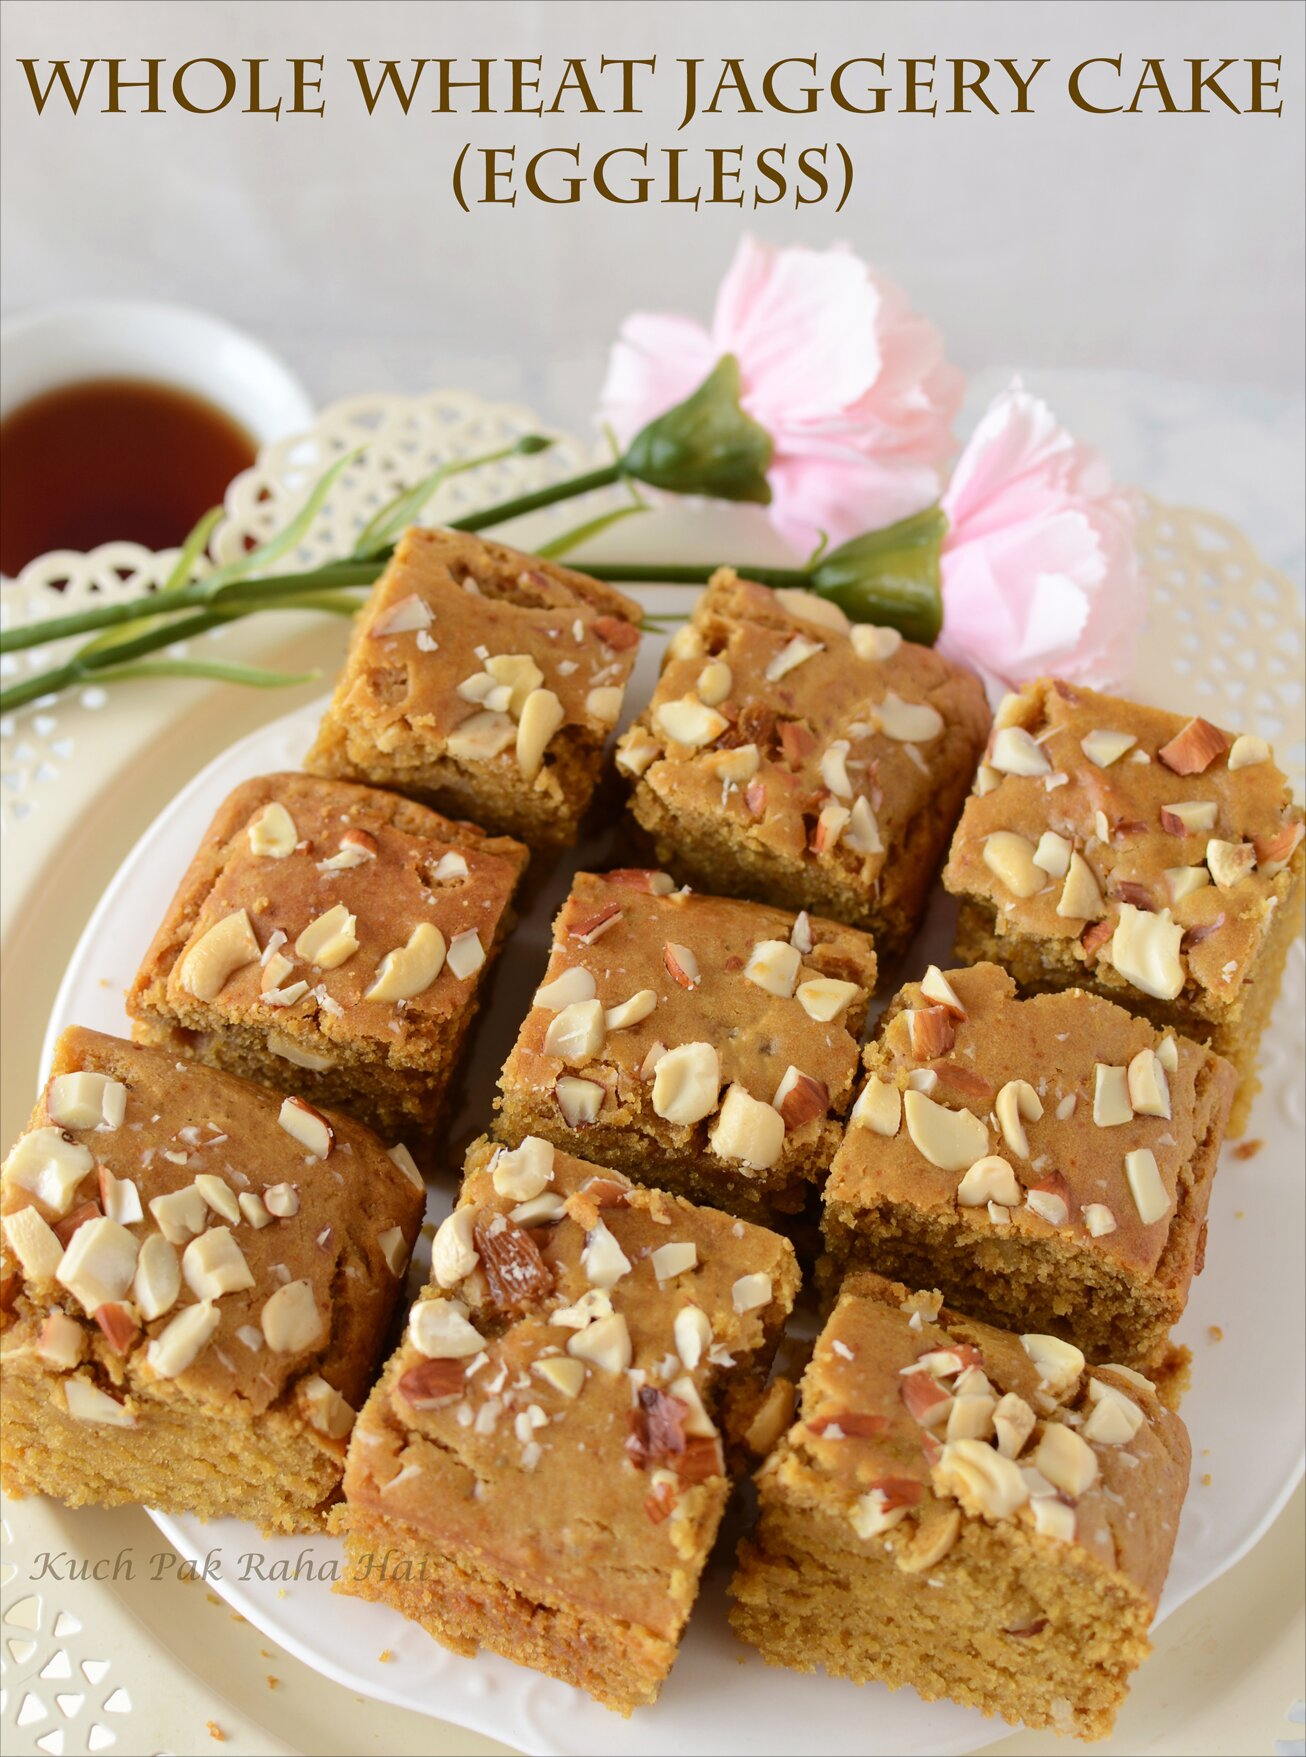 Eggless Whole Wheat Jaggery Cake Recipe